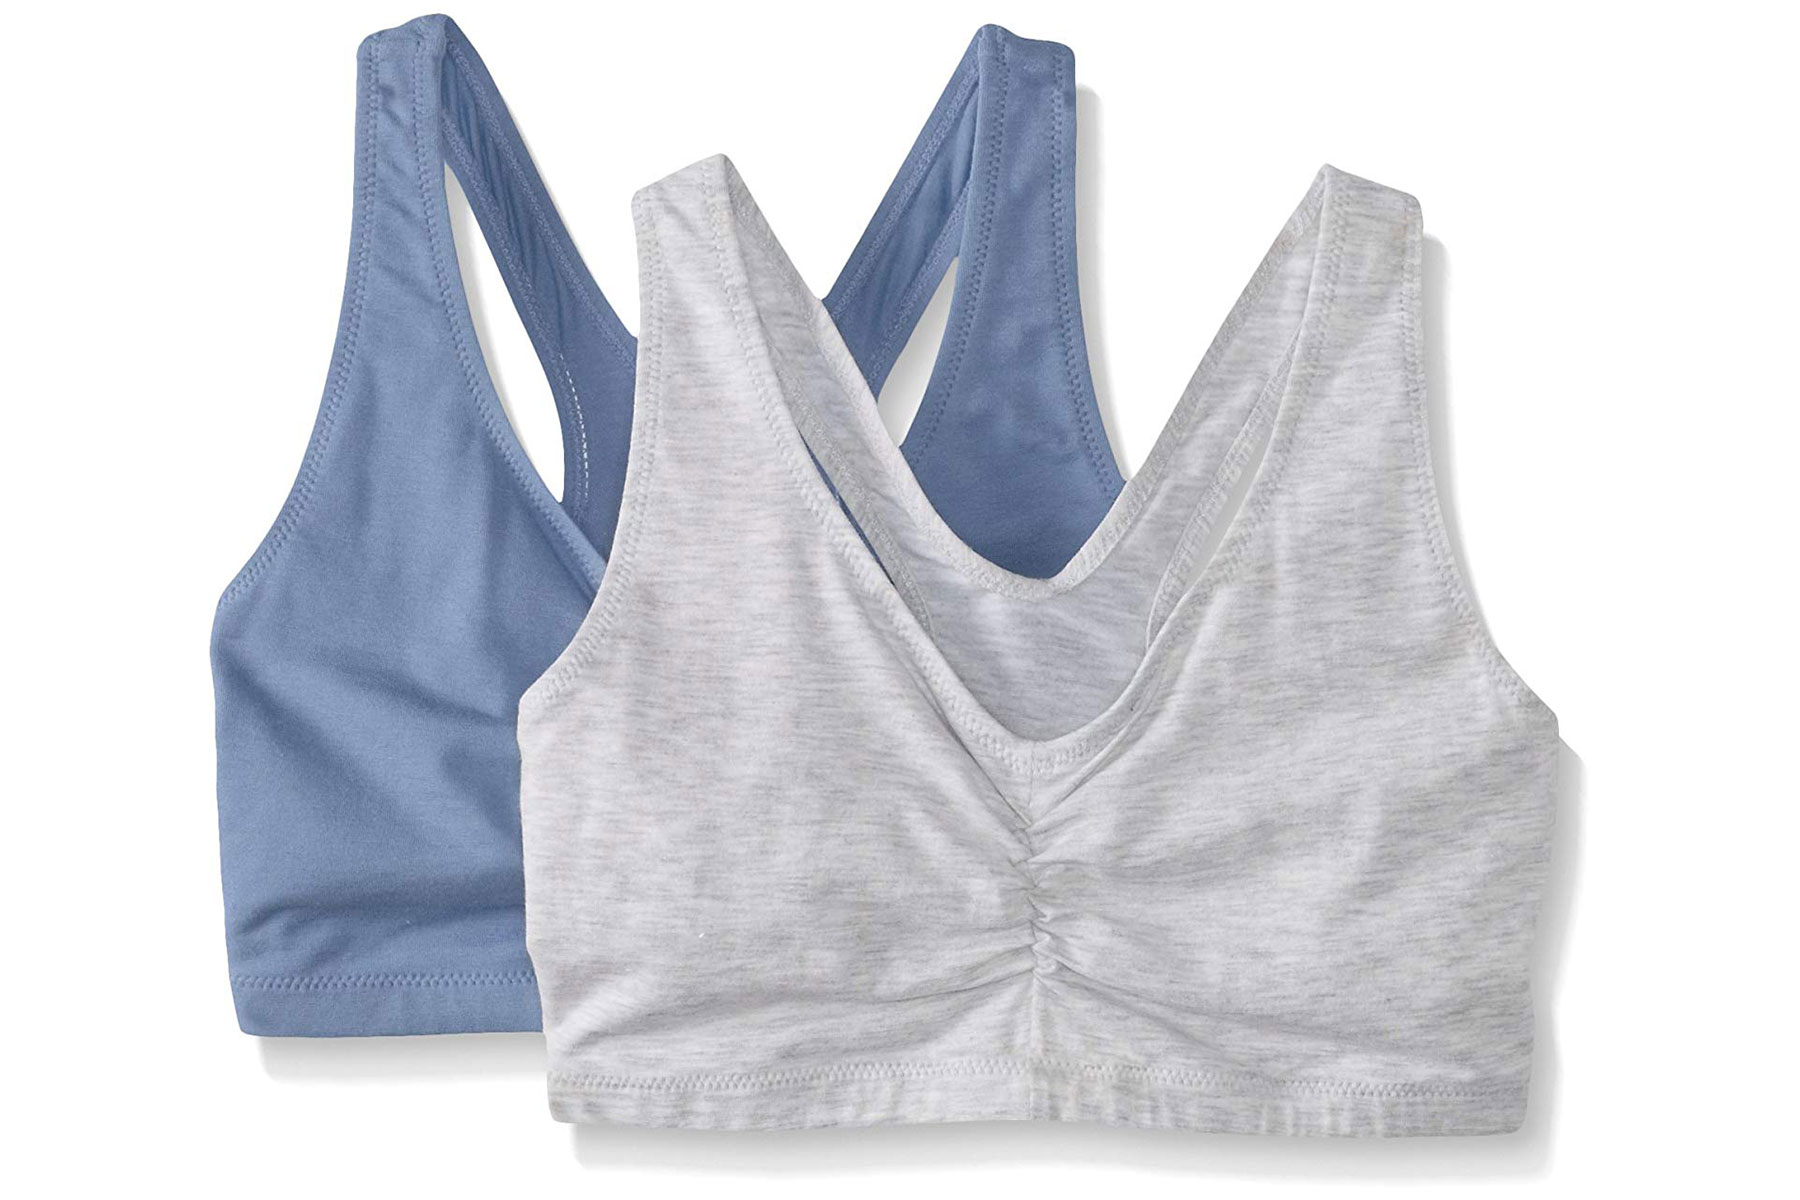 Hanes Women's Comfort-Blend Flex Fit Pullover Bra Two-Pack